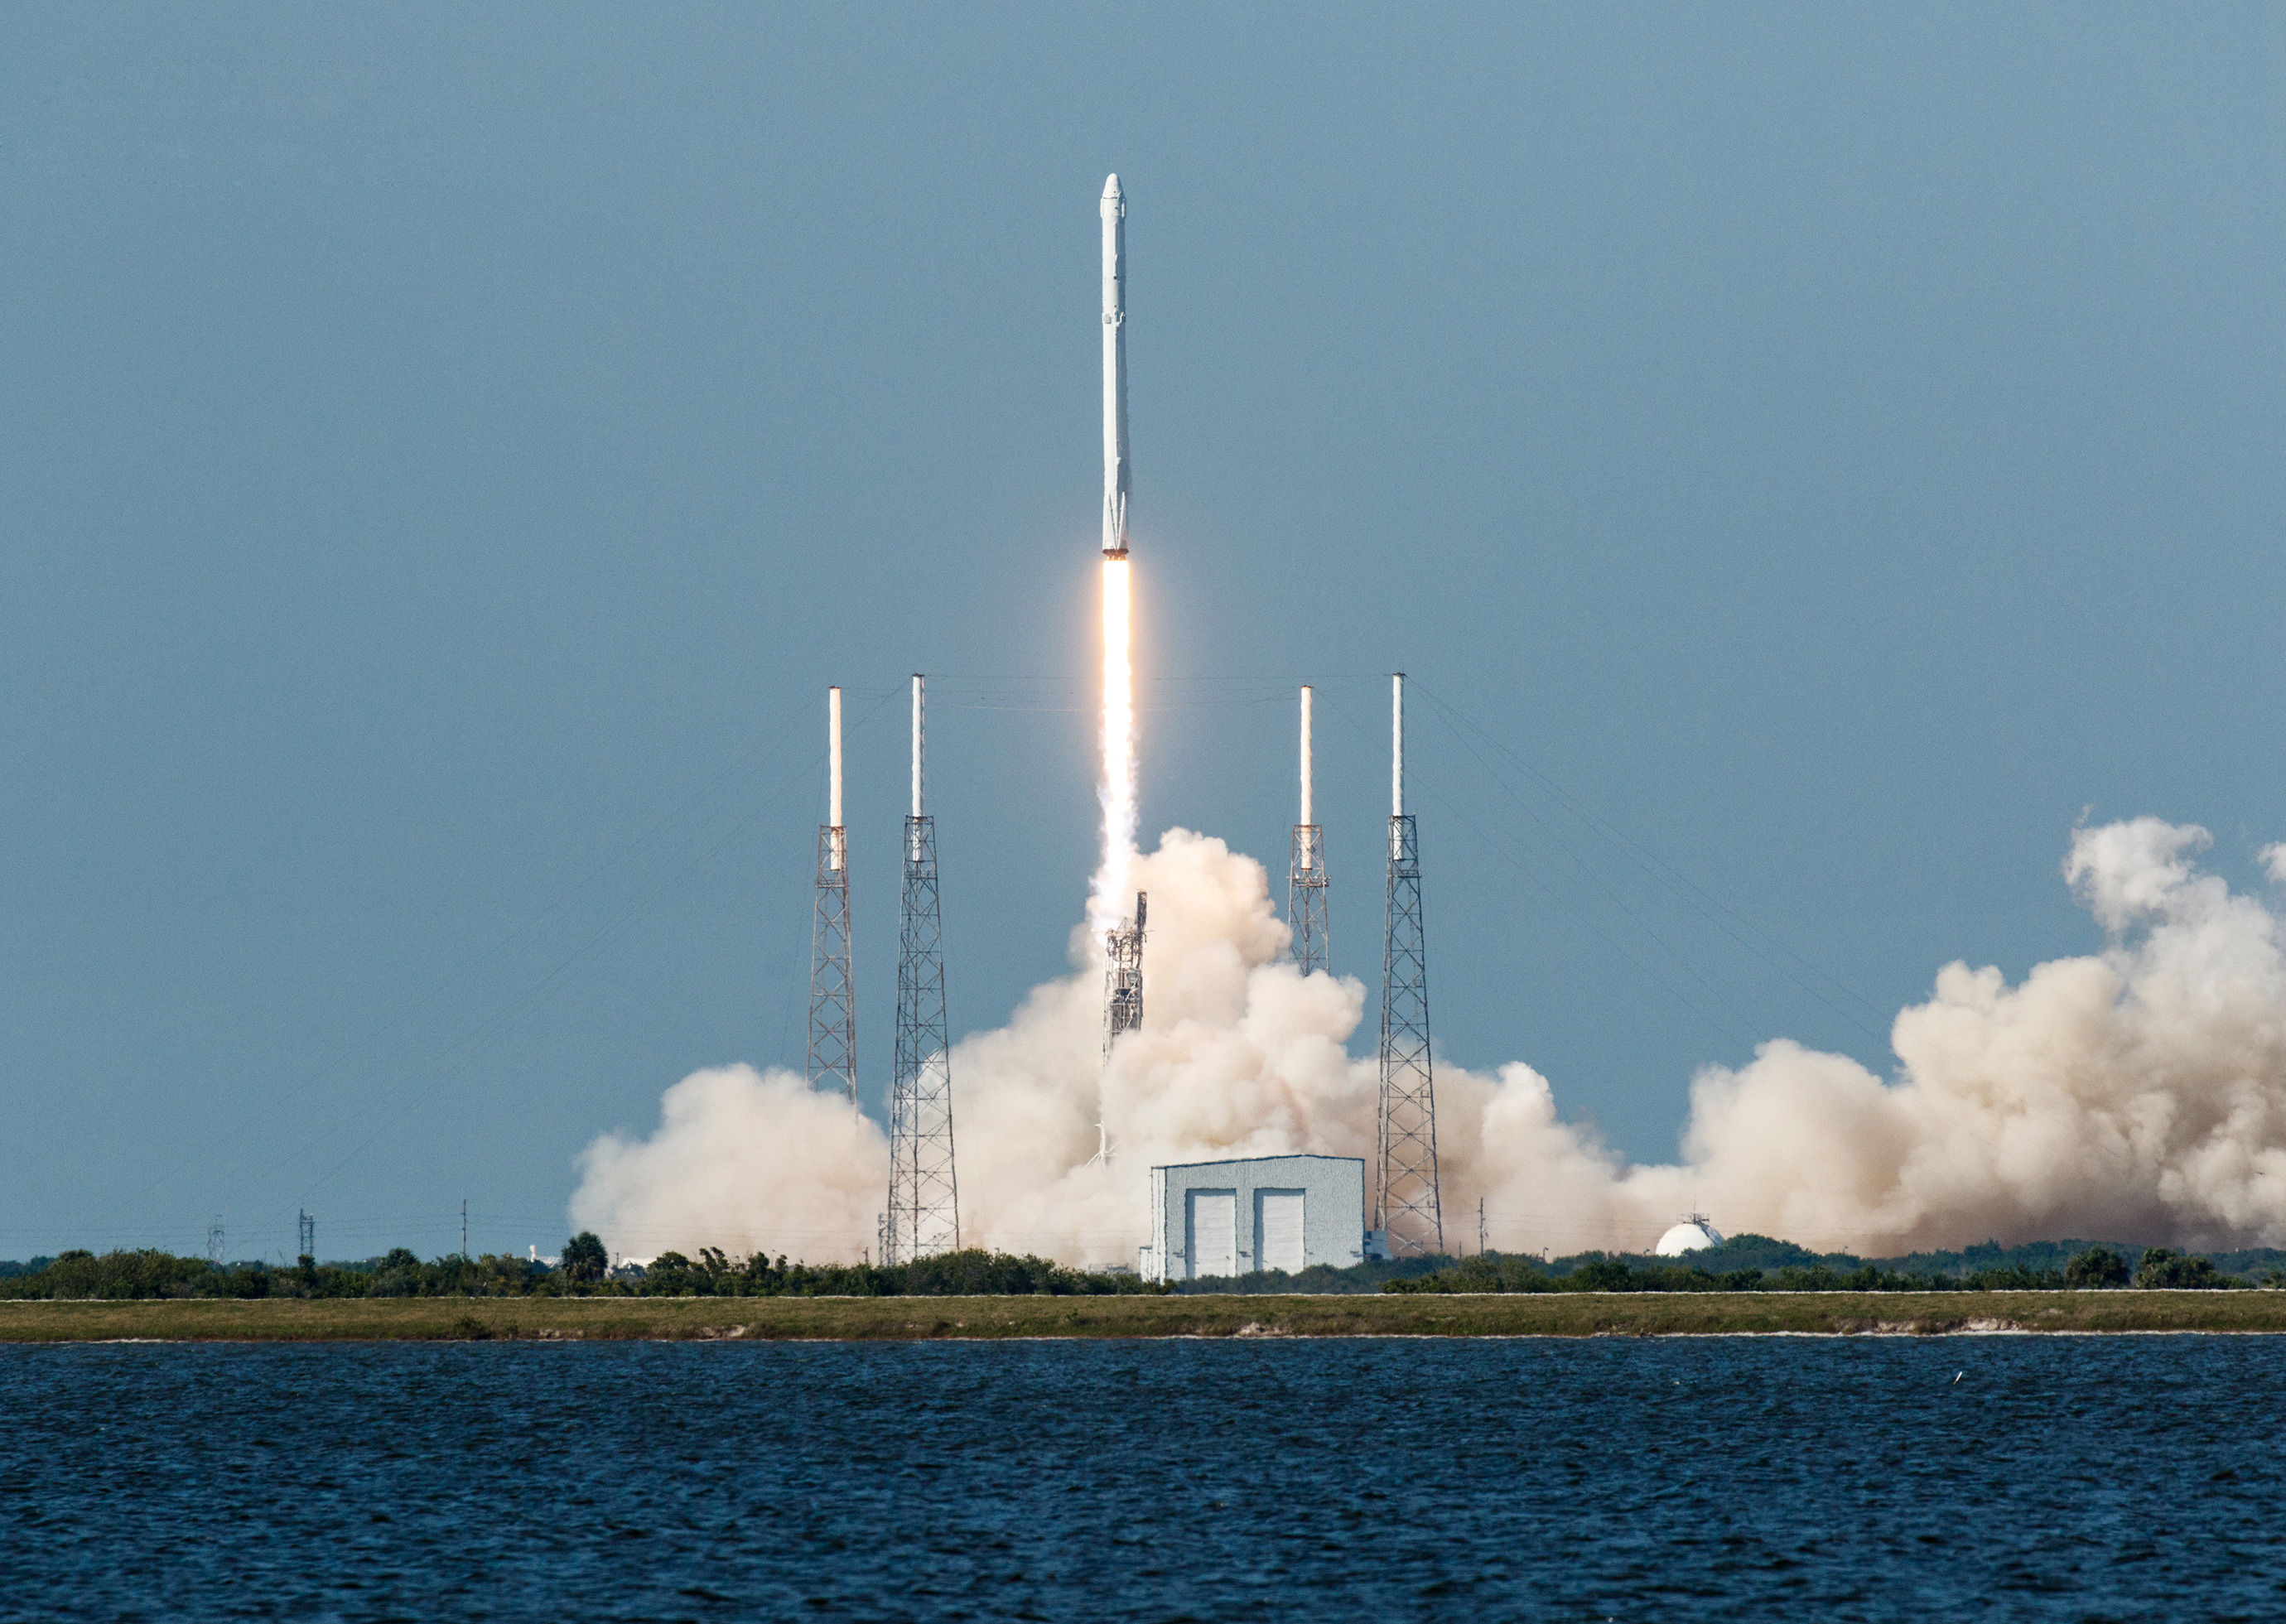 landing rockets is awesome but how much will refurbishing them cost mit technology review